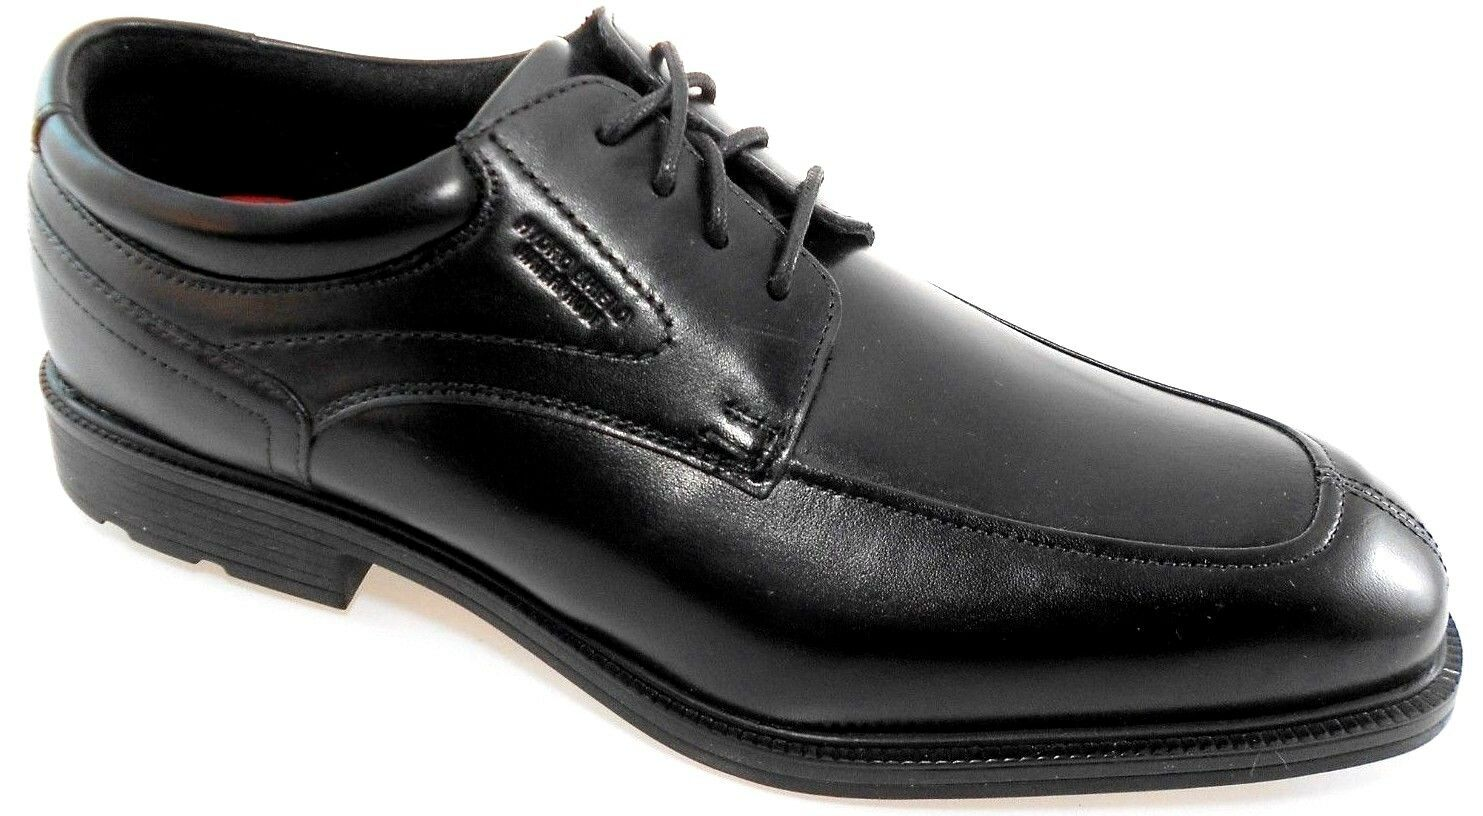 ROCKPORT A13001 APRON TOE herren schwarz WATERPROOF OXFORD Sz 9.5 WIDE(W)